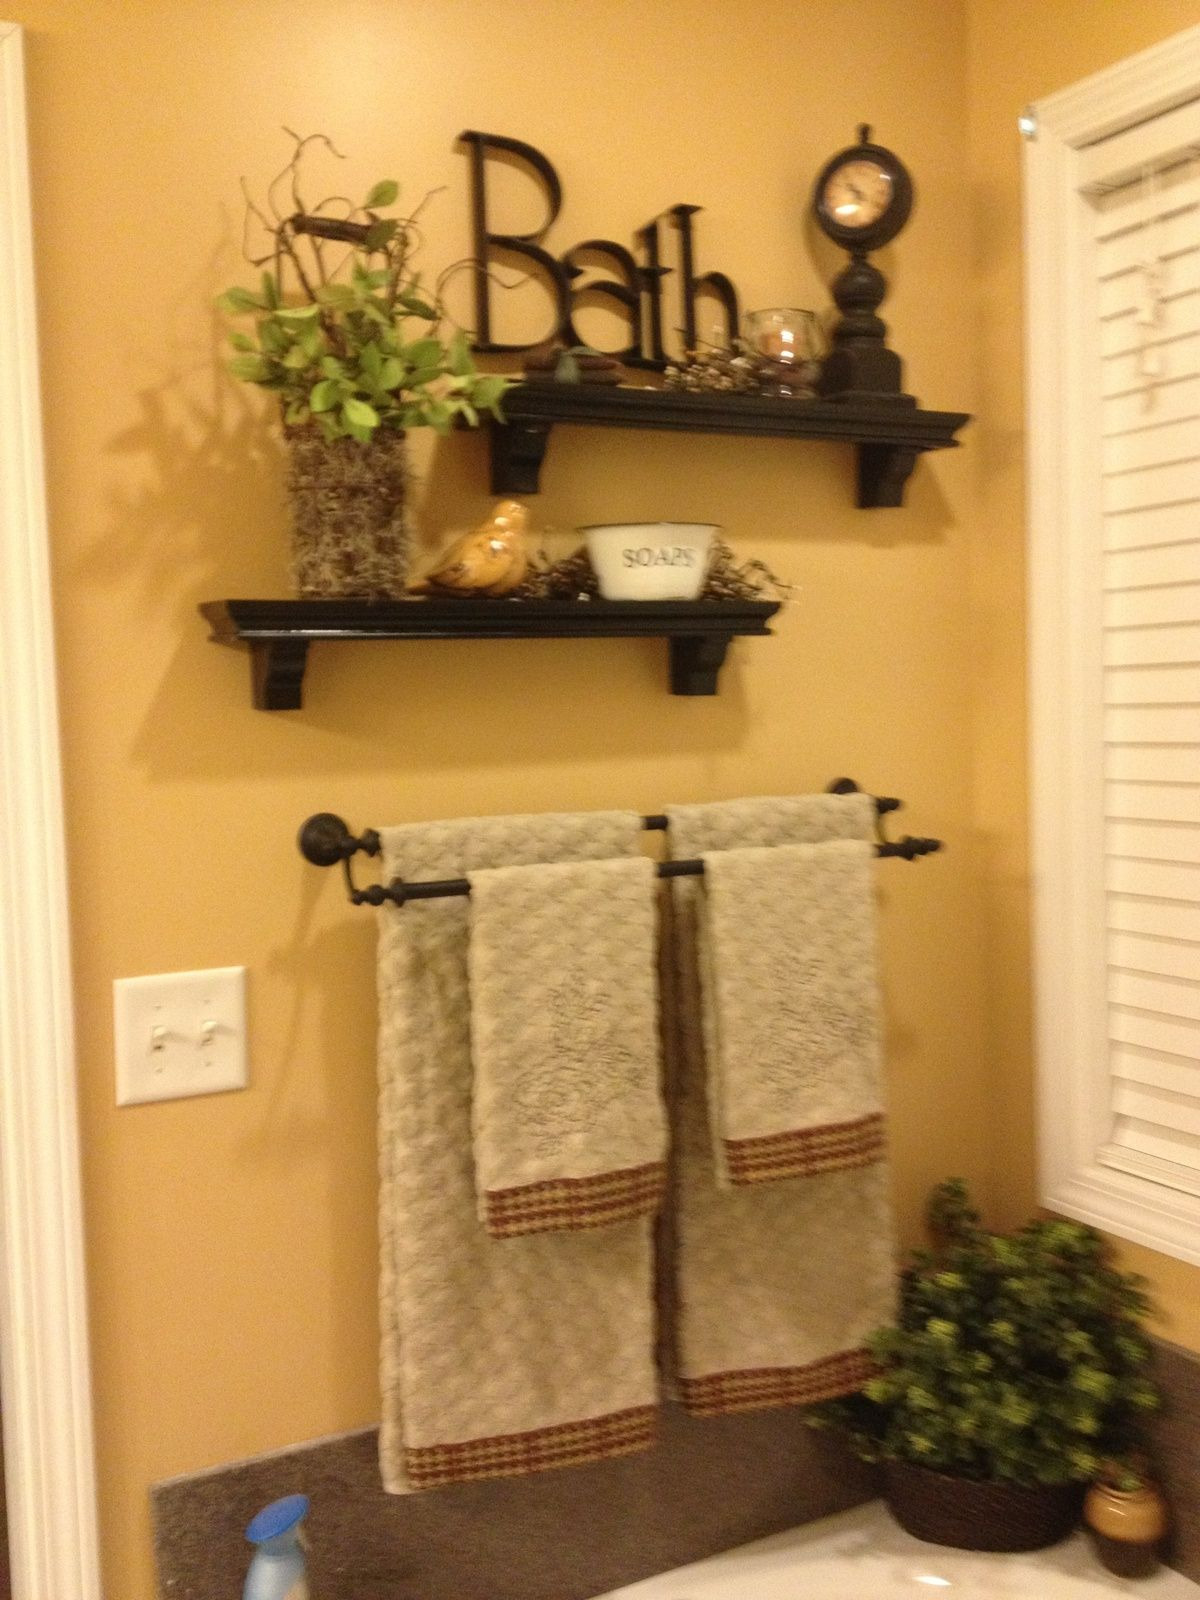 Wall Decorating Ideas for Bathrooms New Cute Could Do that Above the towel Rack In My Upstairs